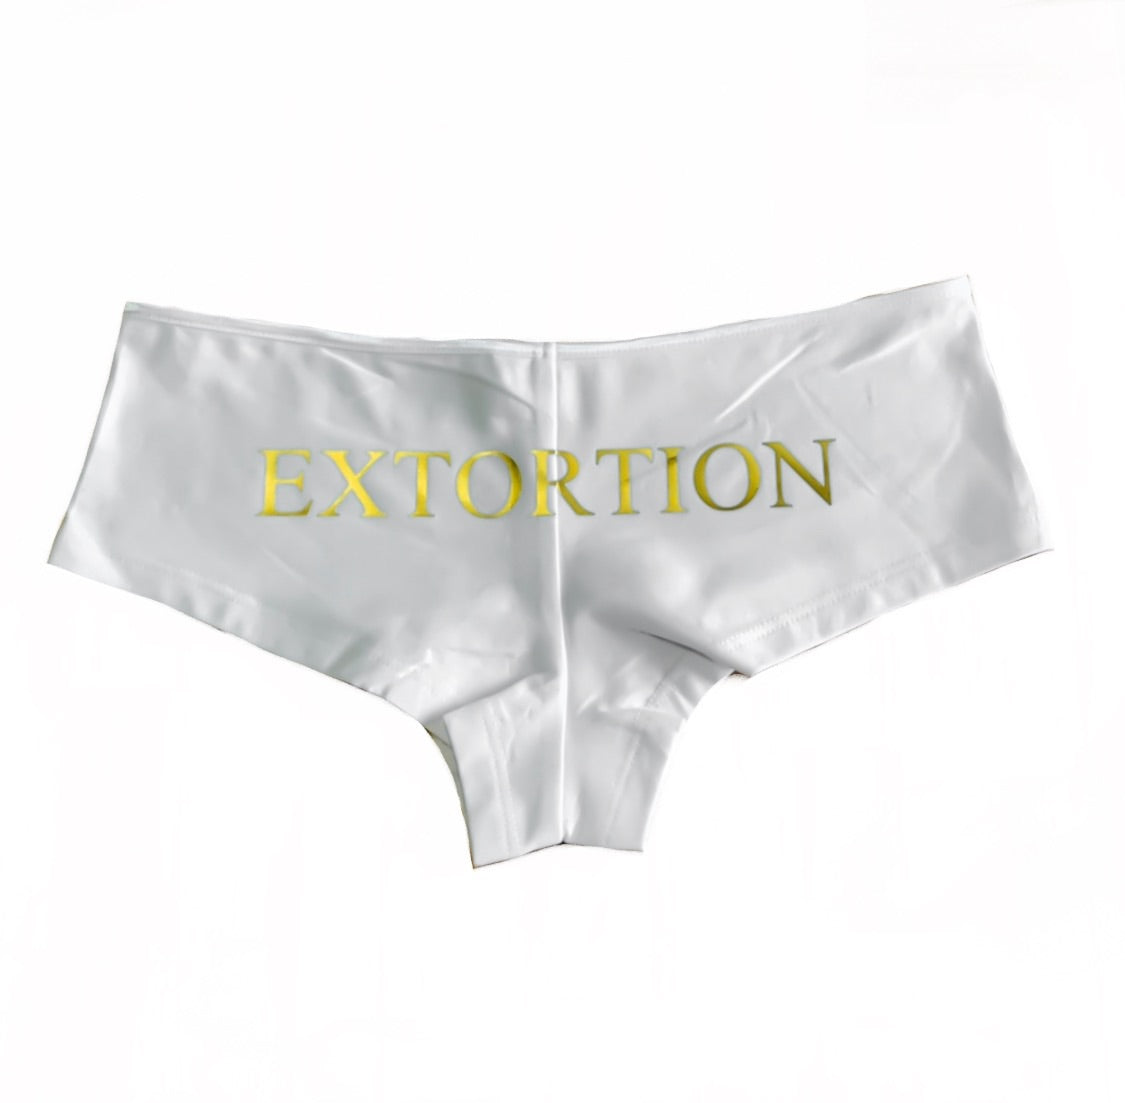 Extortion Boy Shorts